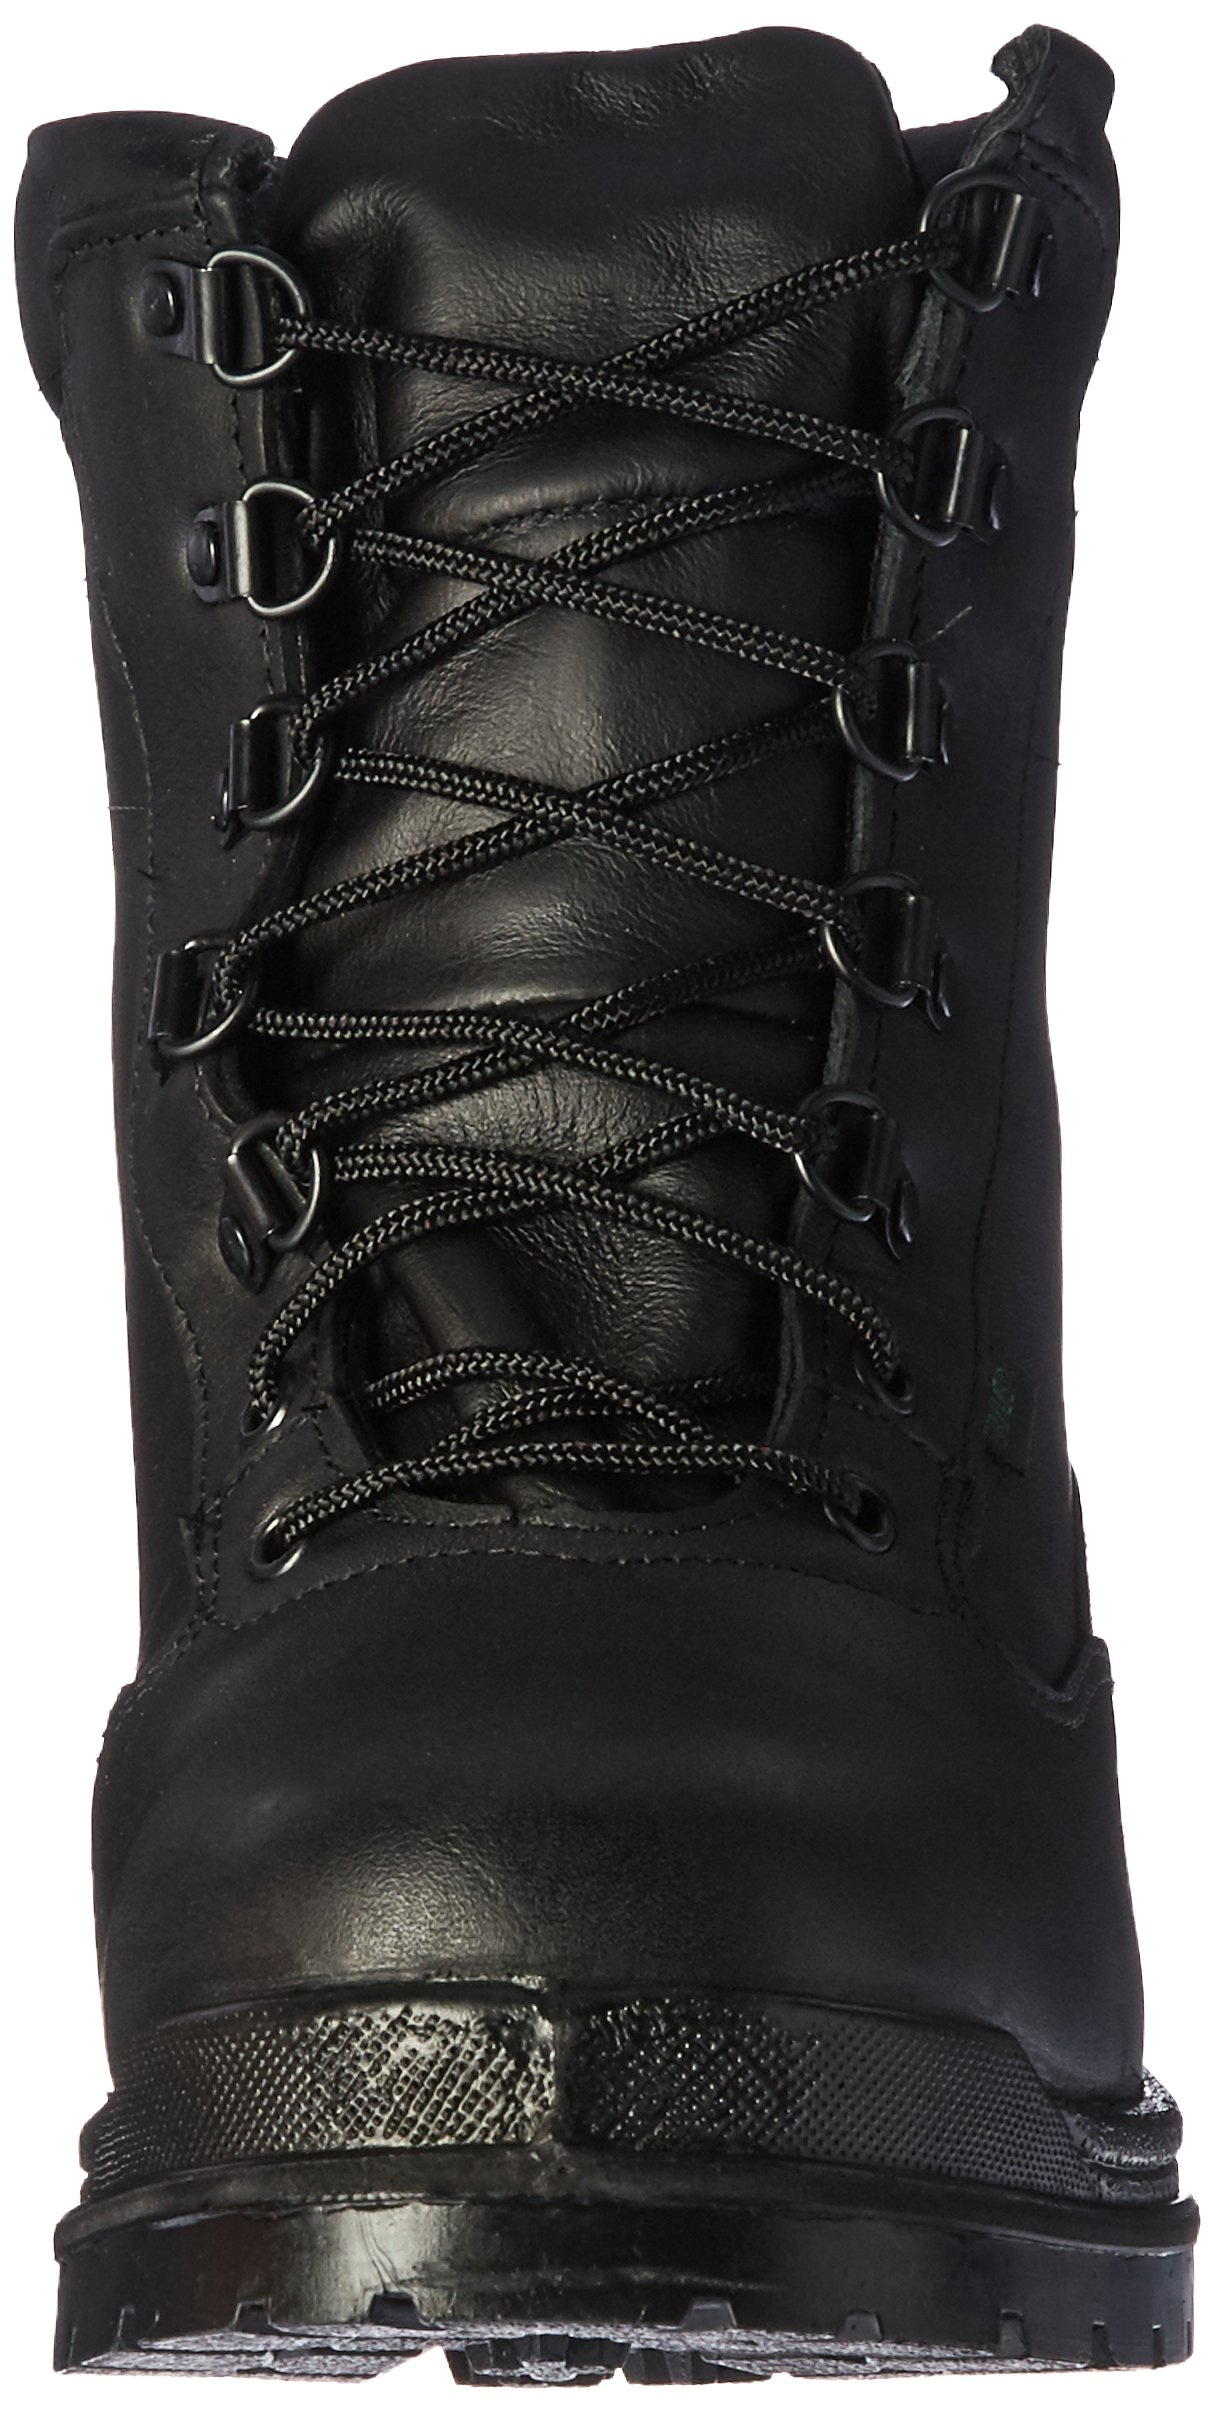 Rocky Men's 6 Inch Postal 8132-1 Slip Resistant Work Boot,Black,12 XW US by Rocky (Image #4)